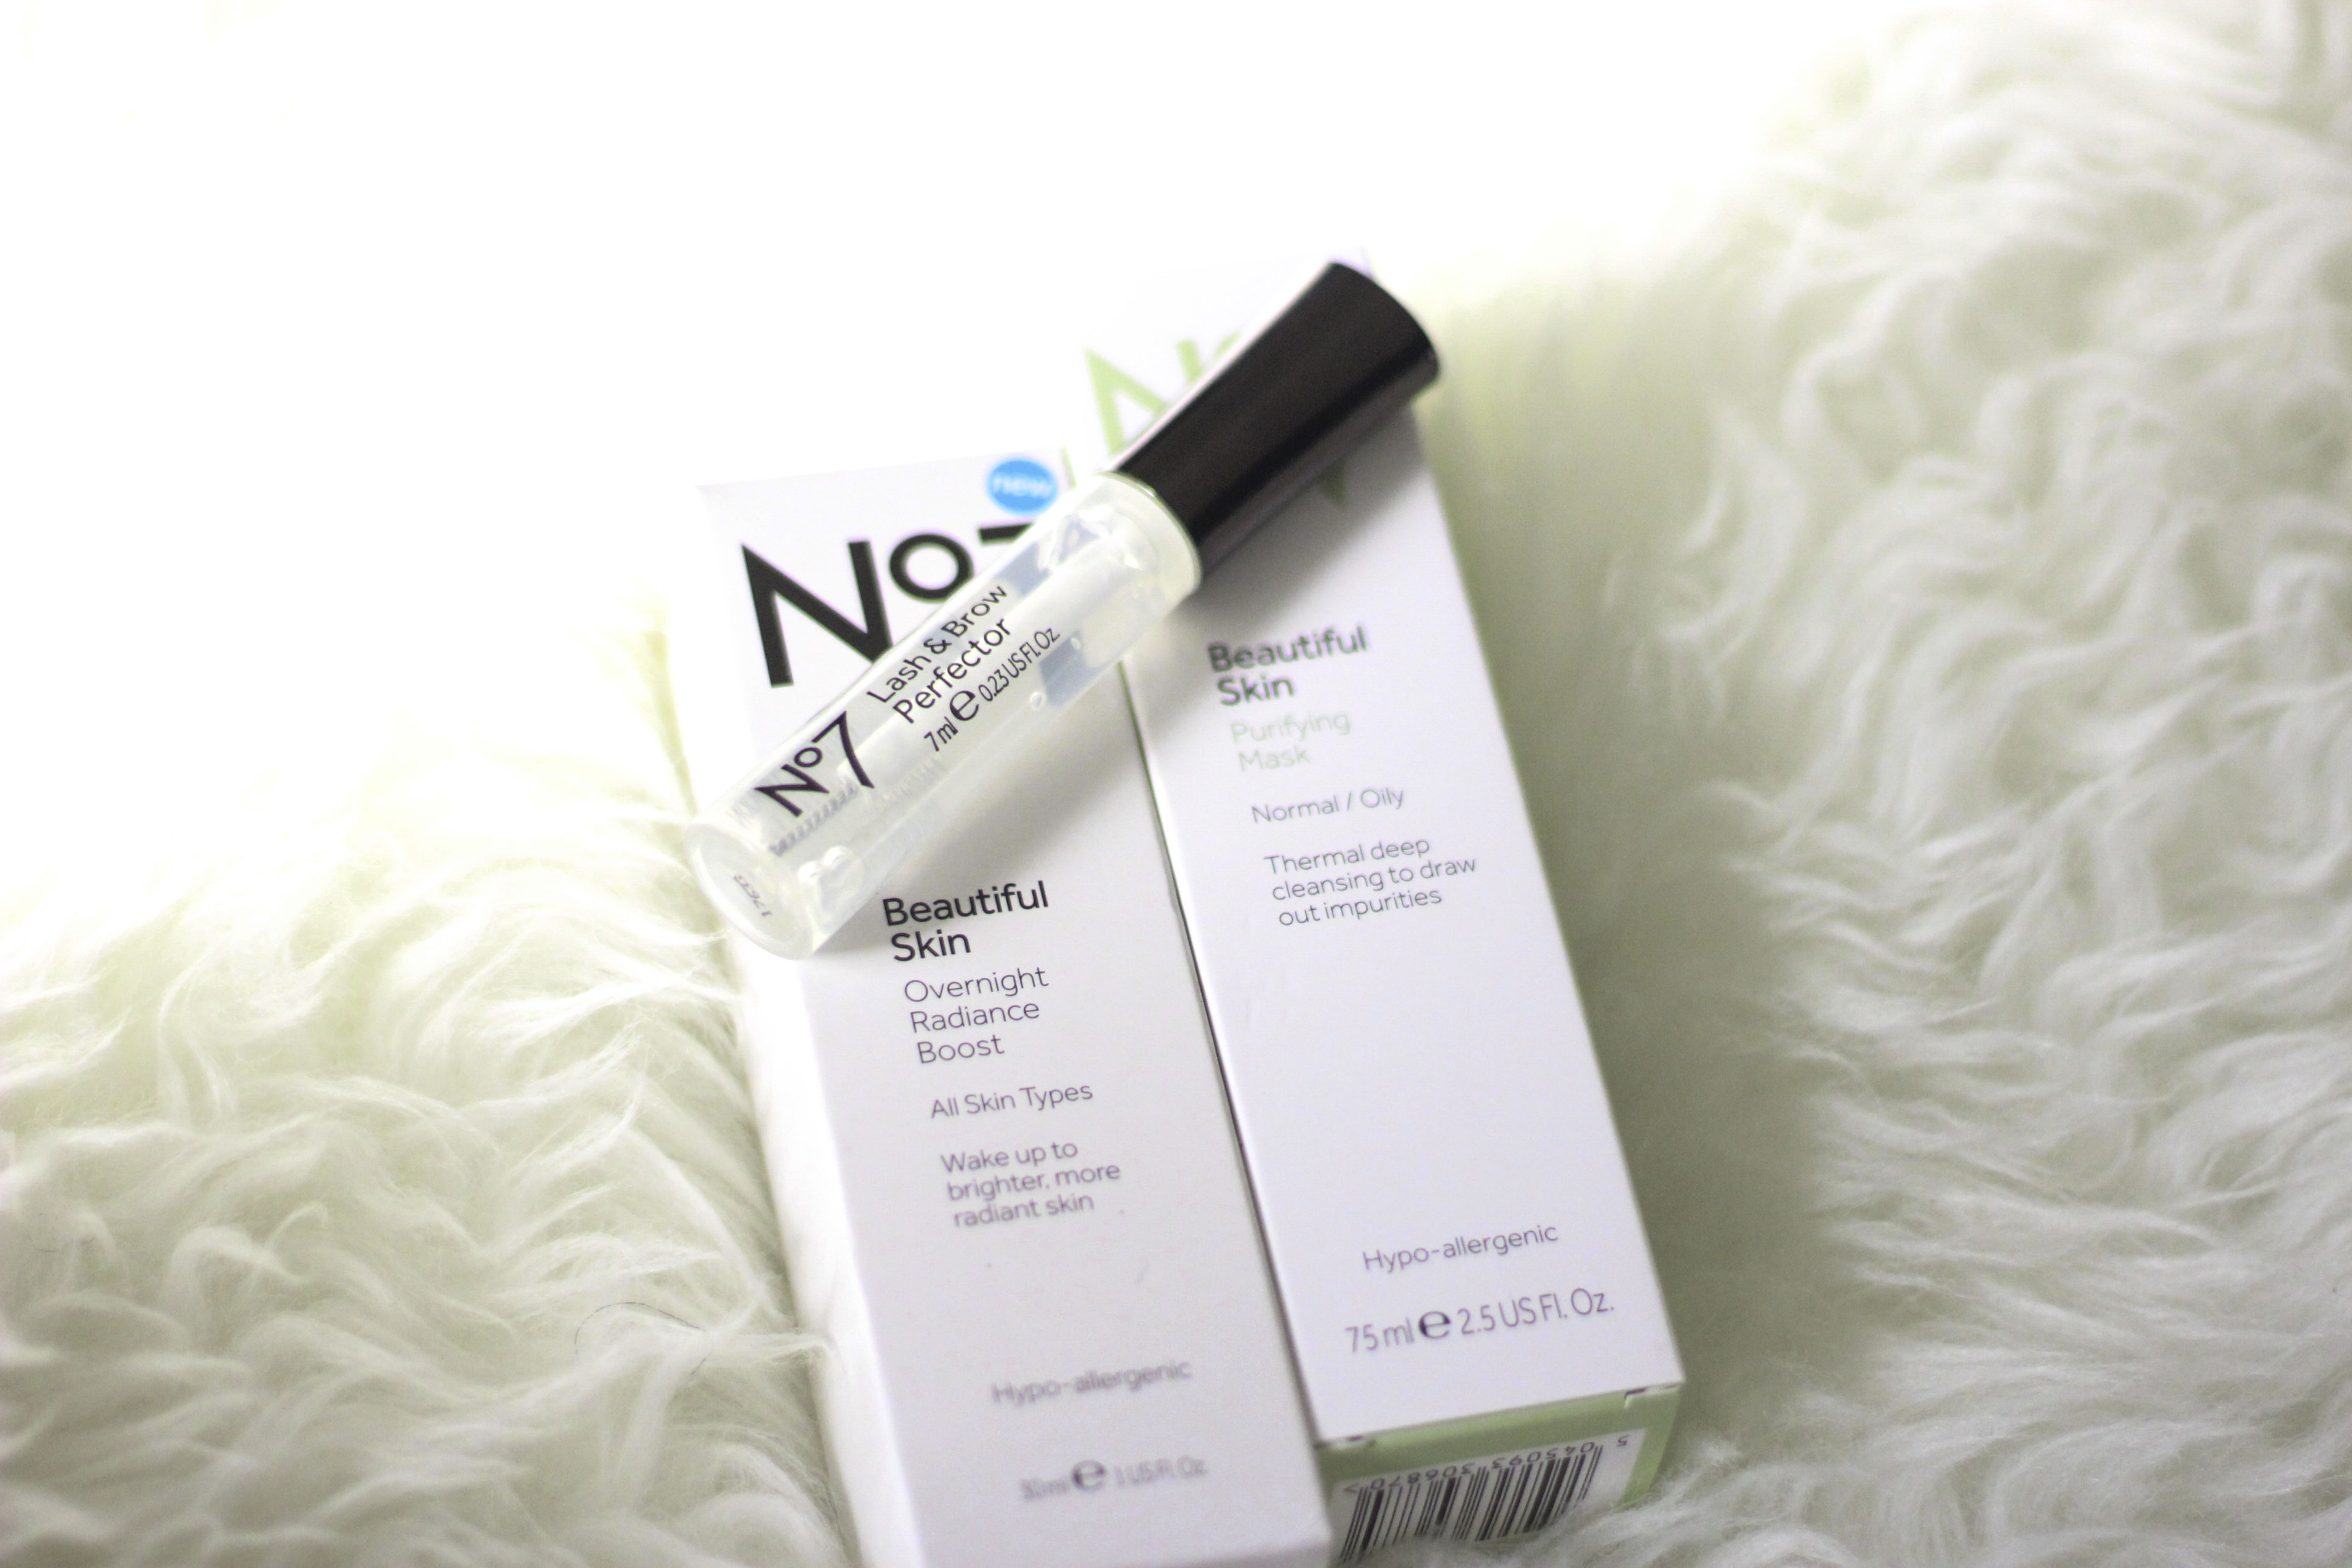 Product Review: Boots No 7 Products - fashionandstylepolice ...